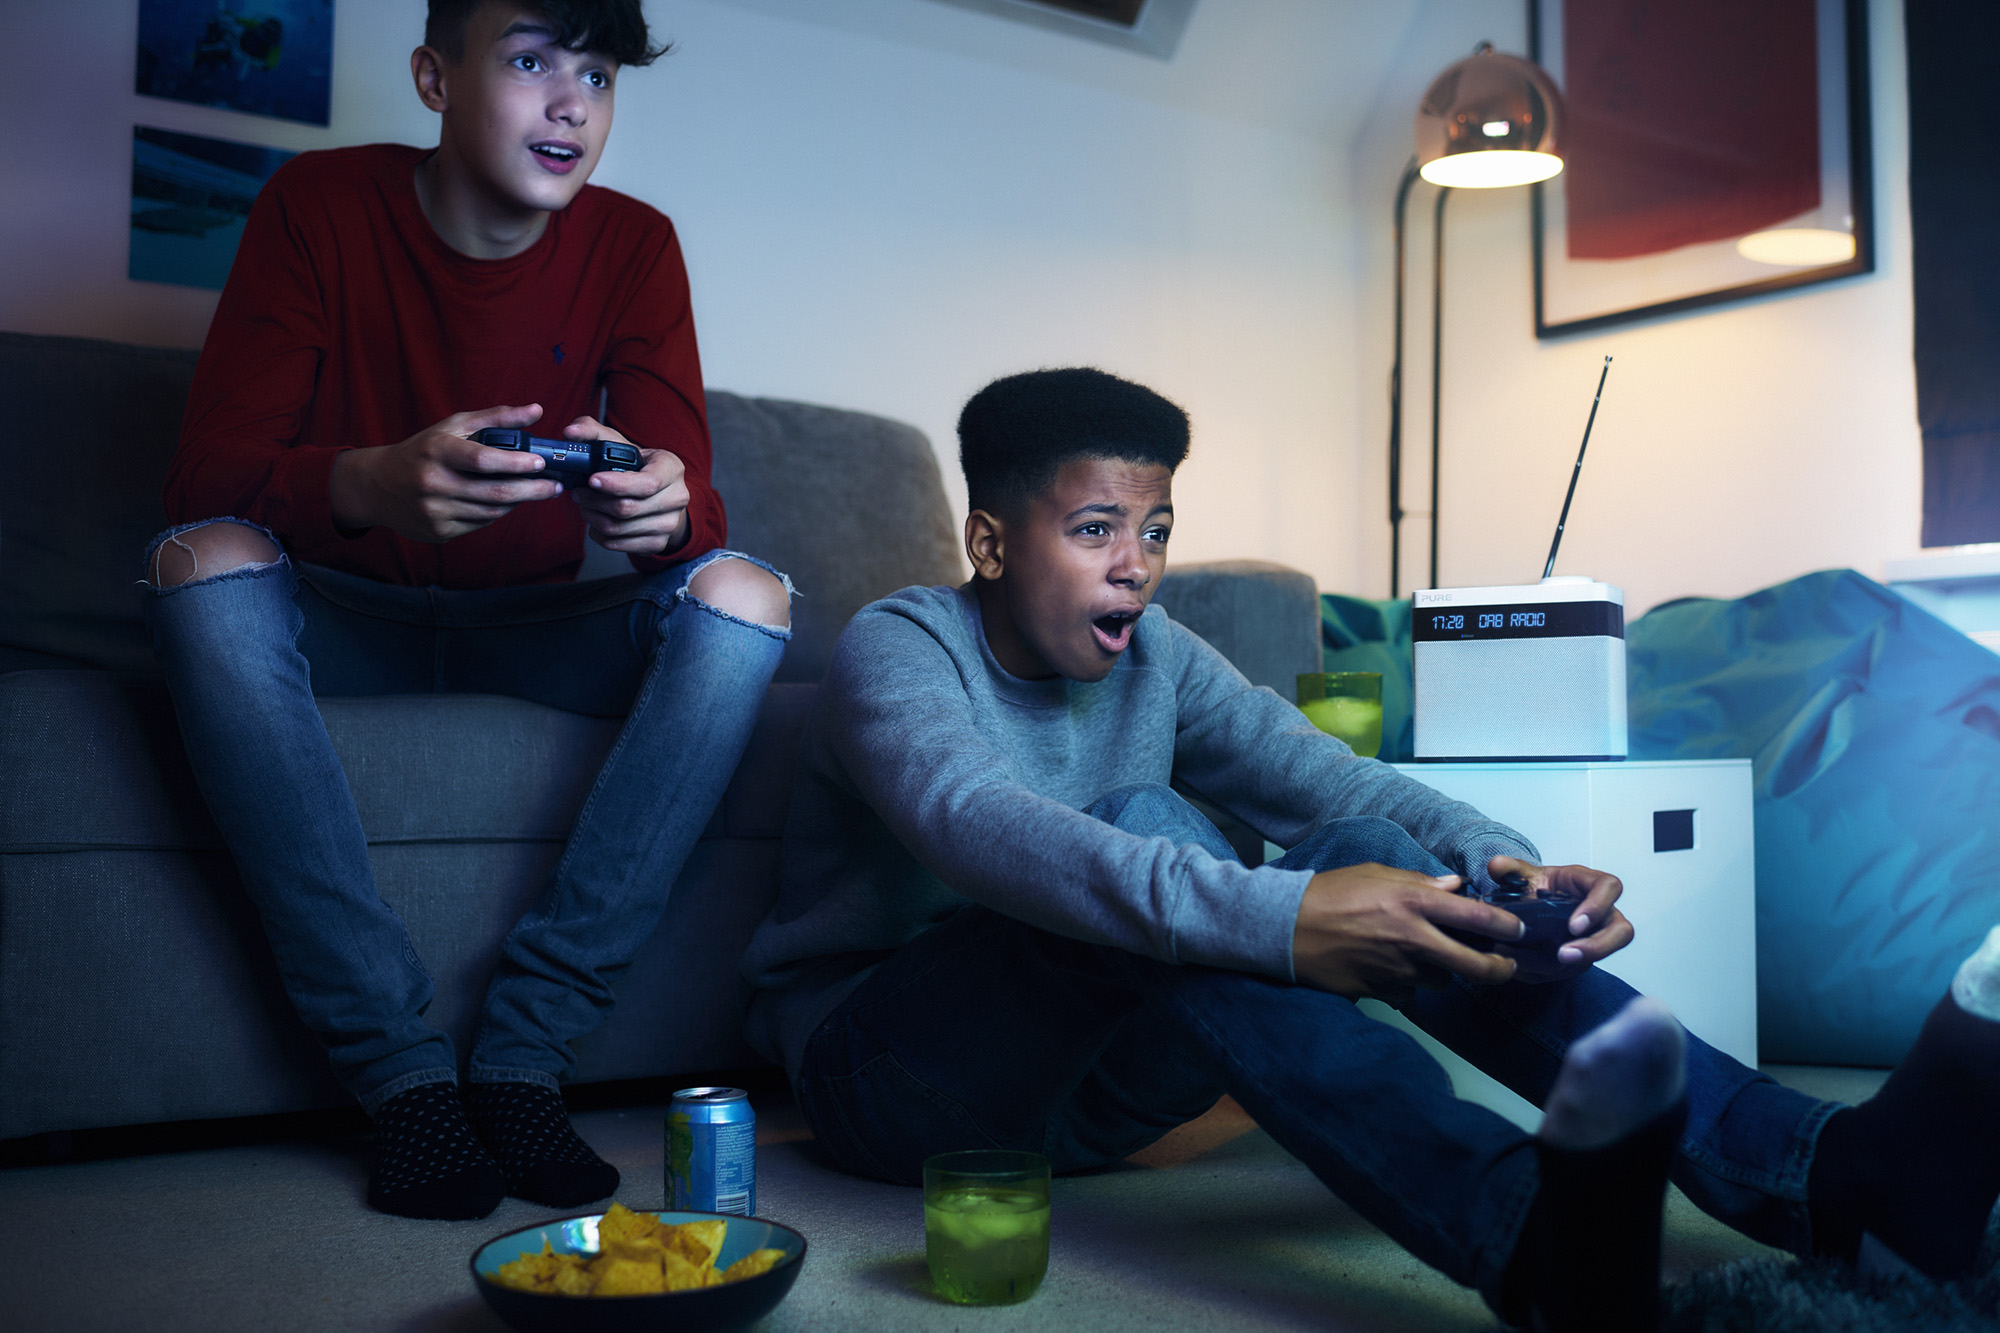 radiocentre boys playing on games console